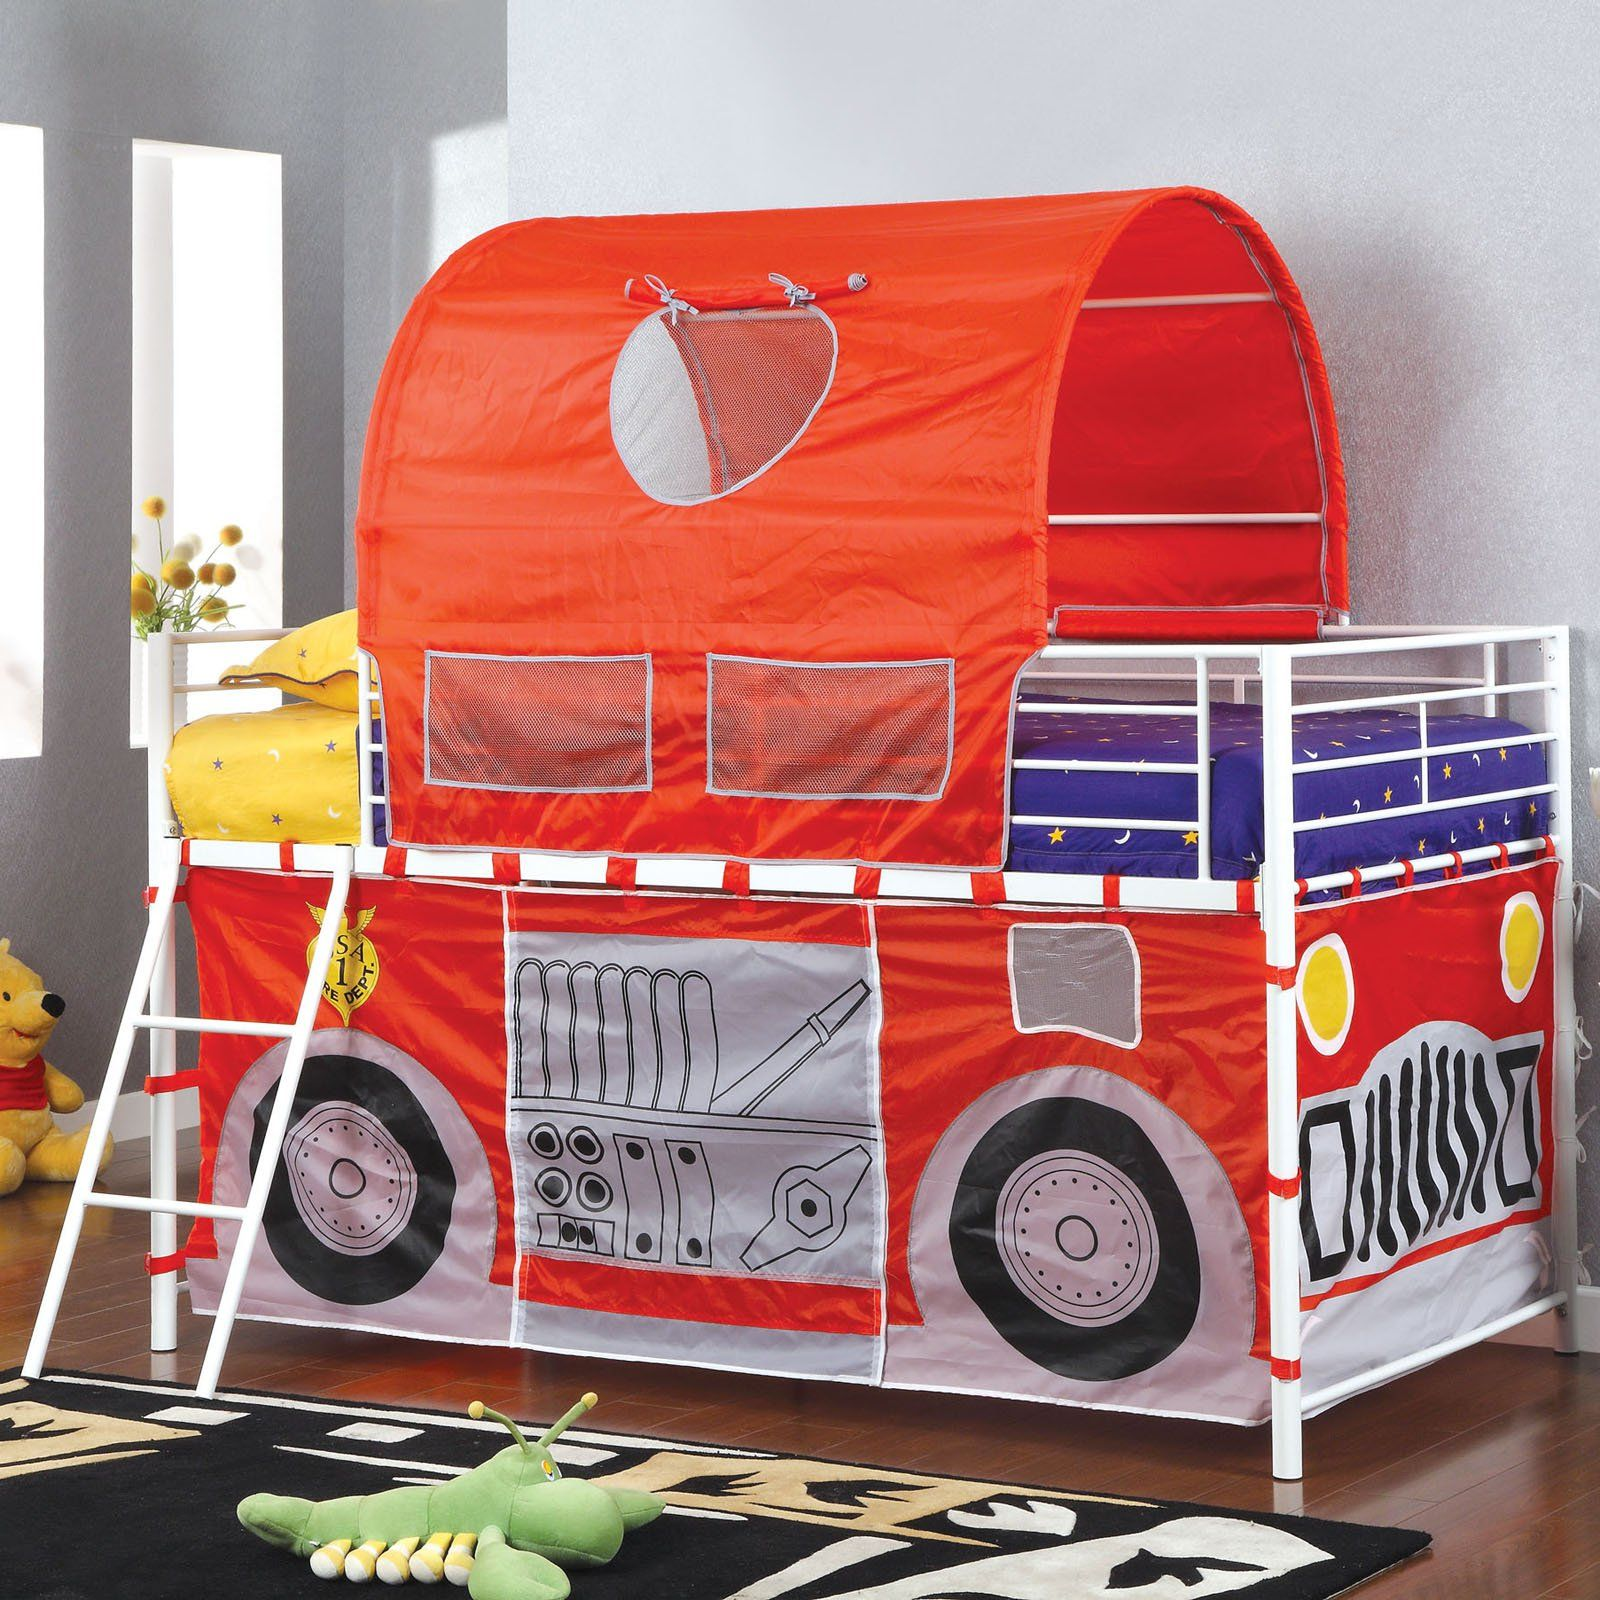 Tanner Fire Truck Inspired Twin Loft Bed with Red Tent